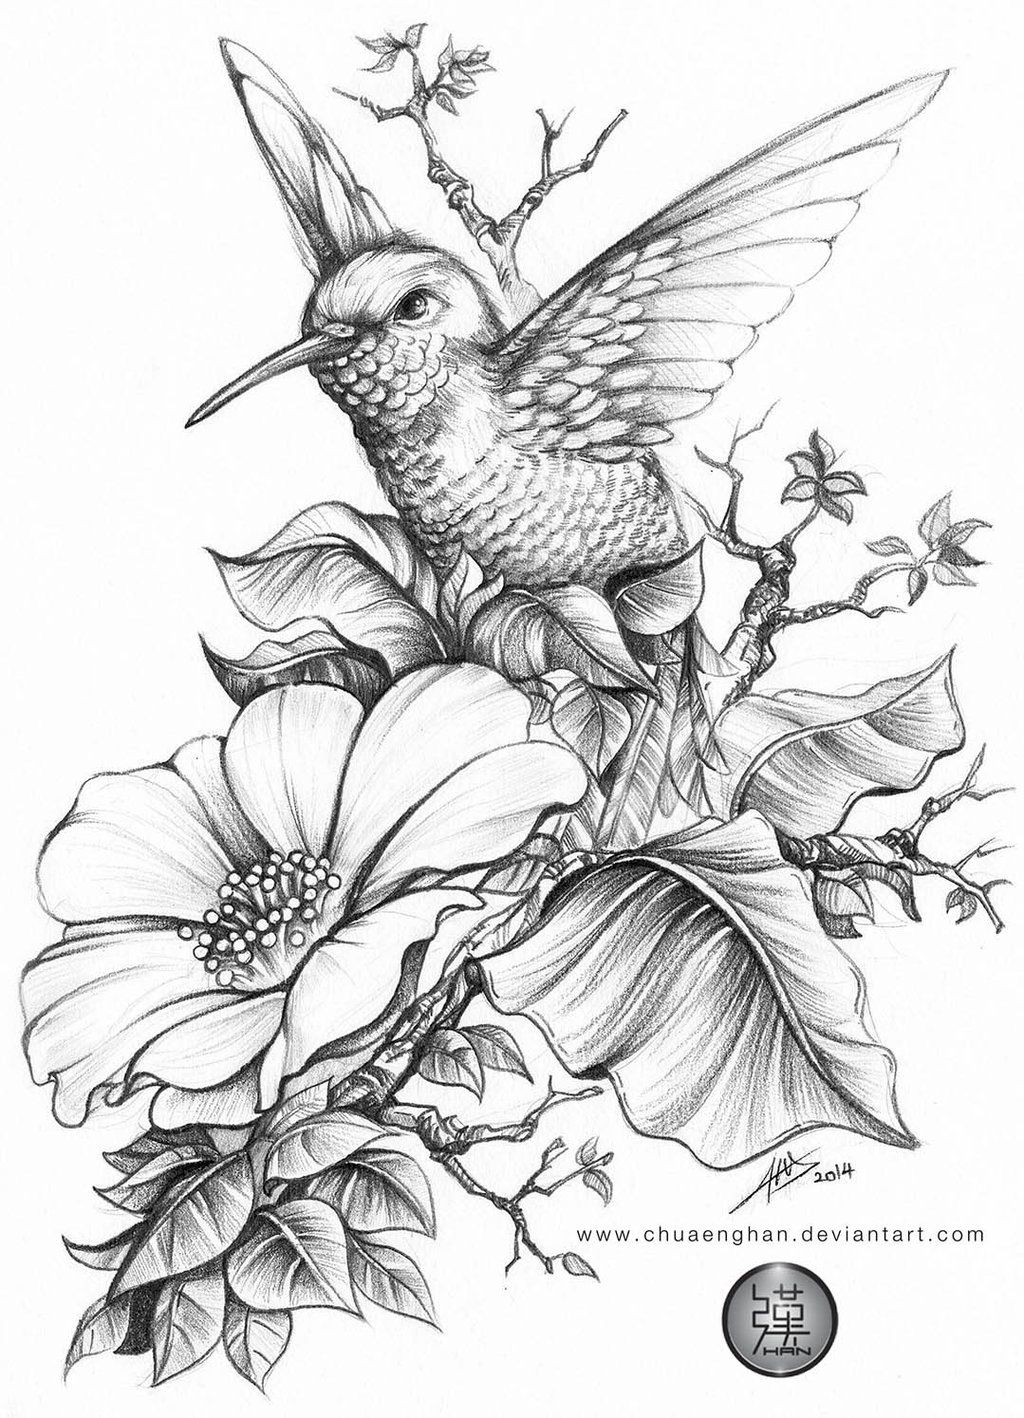 Hummingbird by chuaenghan on DeviantArt | Coloring Pages | Pinterest ...